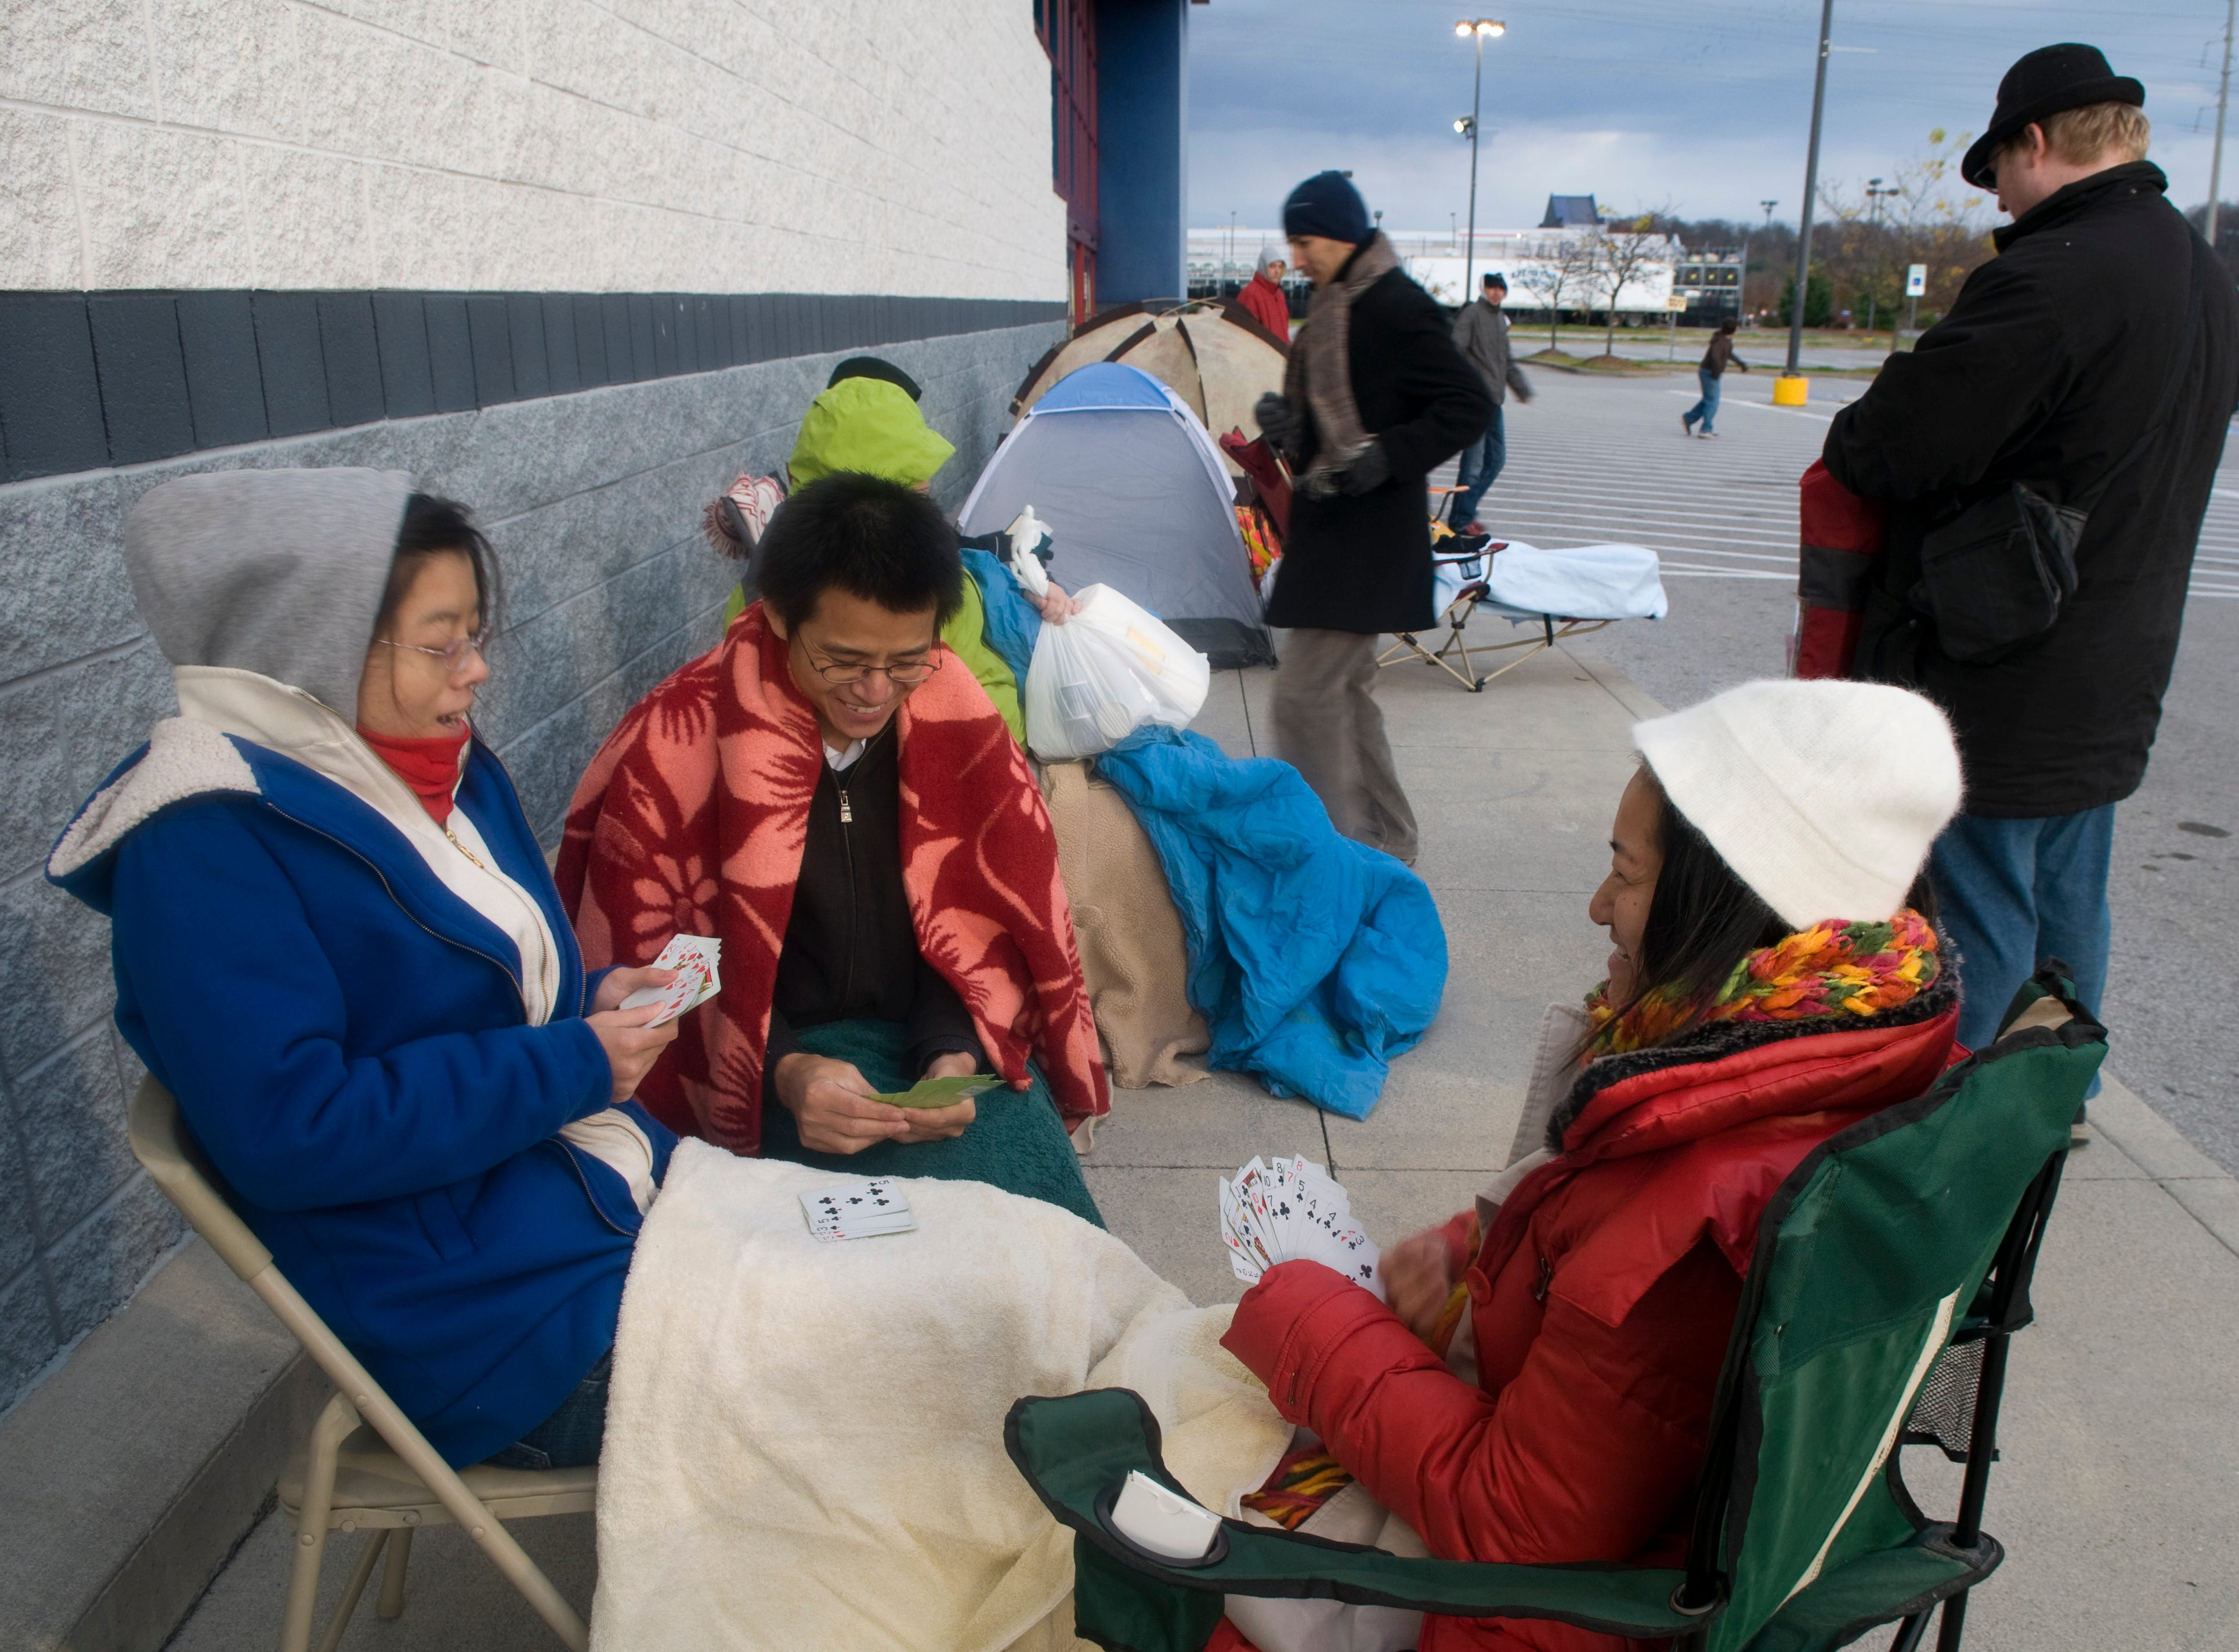 Three UT students play a game of cards to pass the time as they wait for Best Buy to open Friday morning.   Cai Quing, left, Hu Zhixiong, (cq) center and Minfeng Jin, right are UT students and they are waiting to buy a computer. Early bird shoppers started lining up outside Knoxville Store before the sun set on Thanksgiving Day. Thursday, November 26, 2009